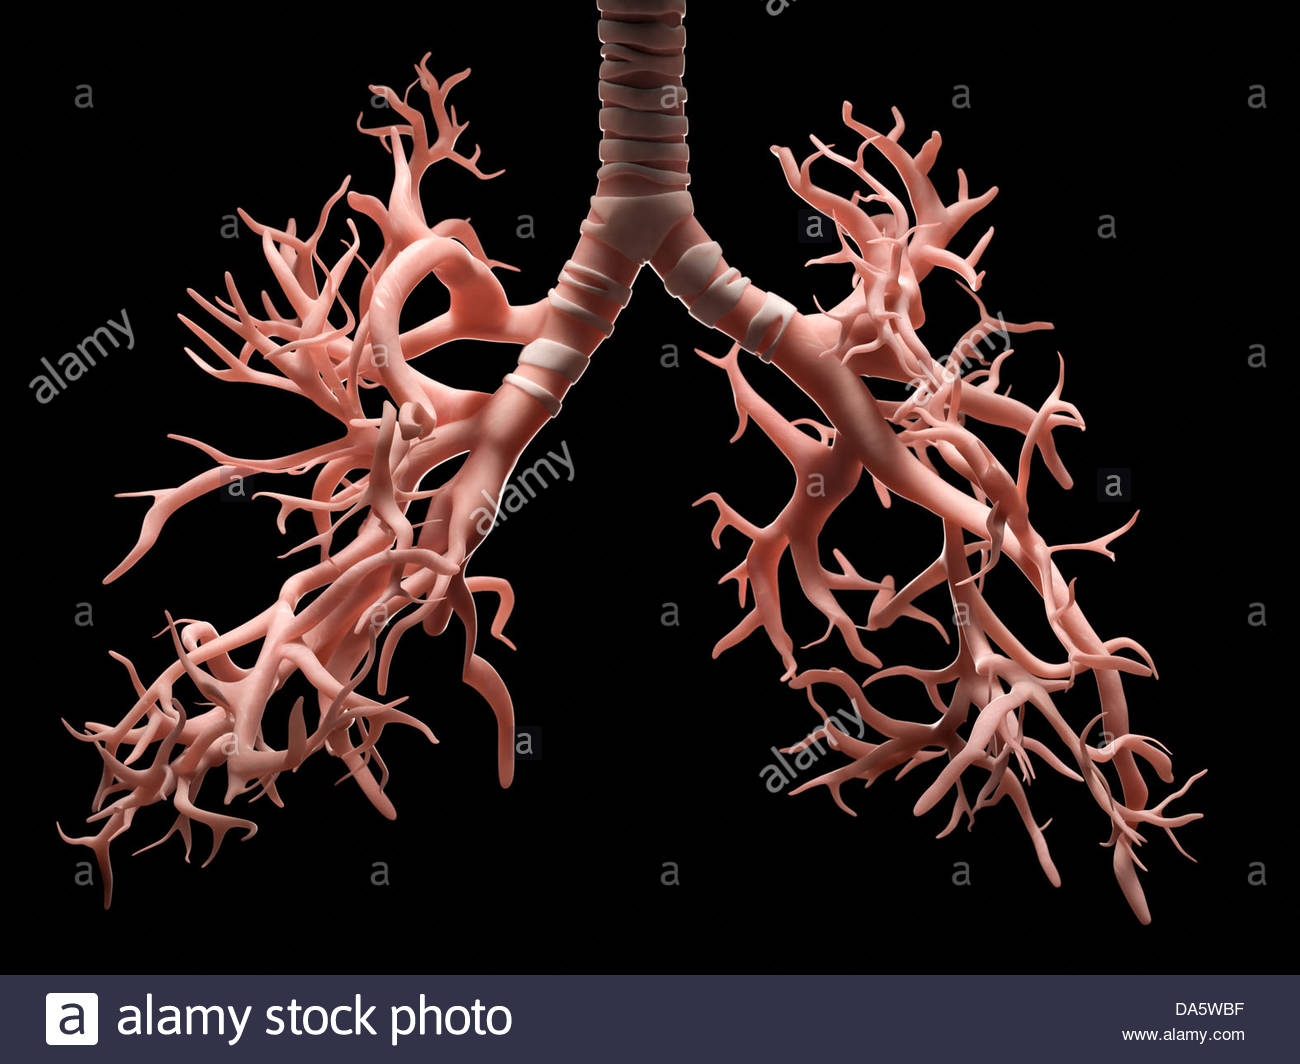 Digital medical illustration depicting the bronchi and trachea of the human respiratory system. - Stock Image